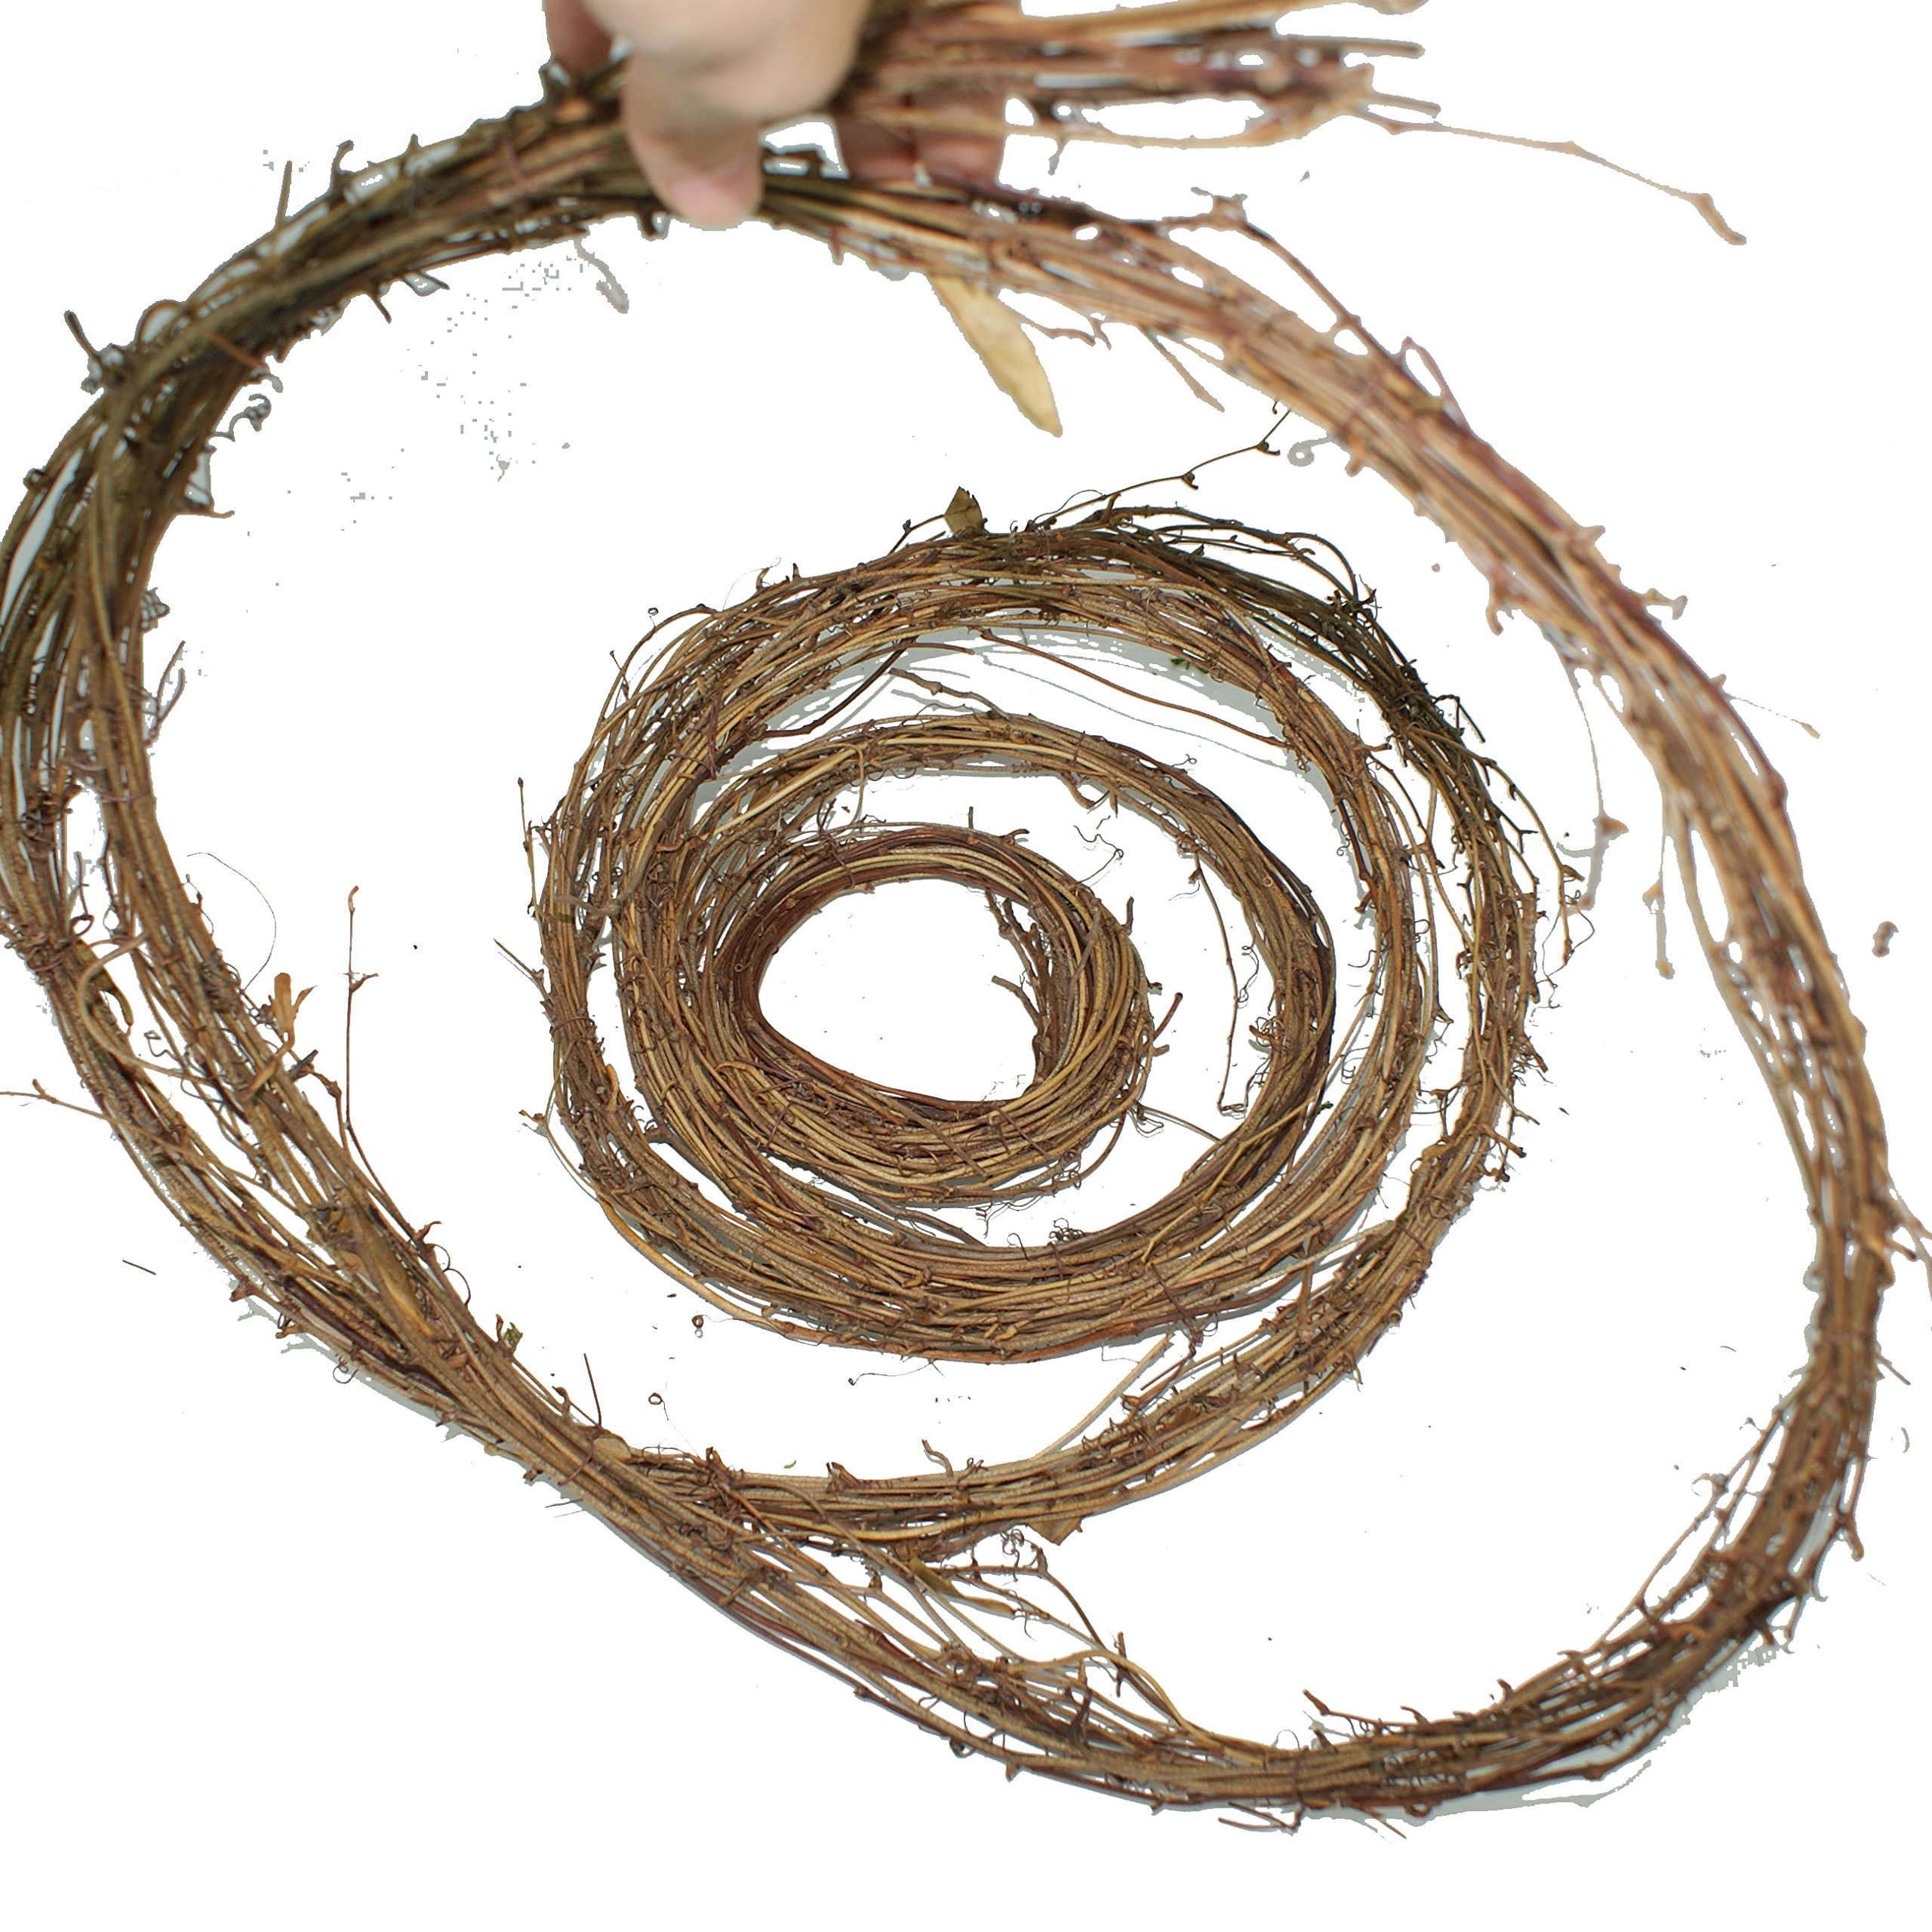 Forevercute 2pcs 12 Ft Roll of Natural Dried Grapevine Garland color brown